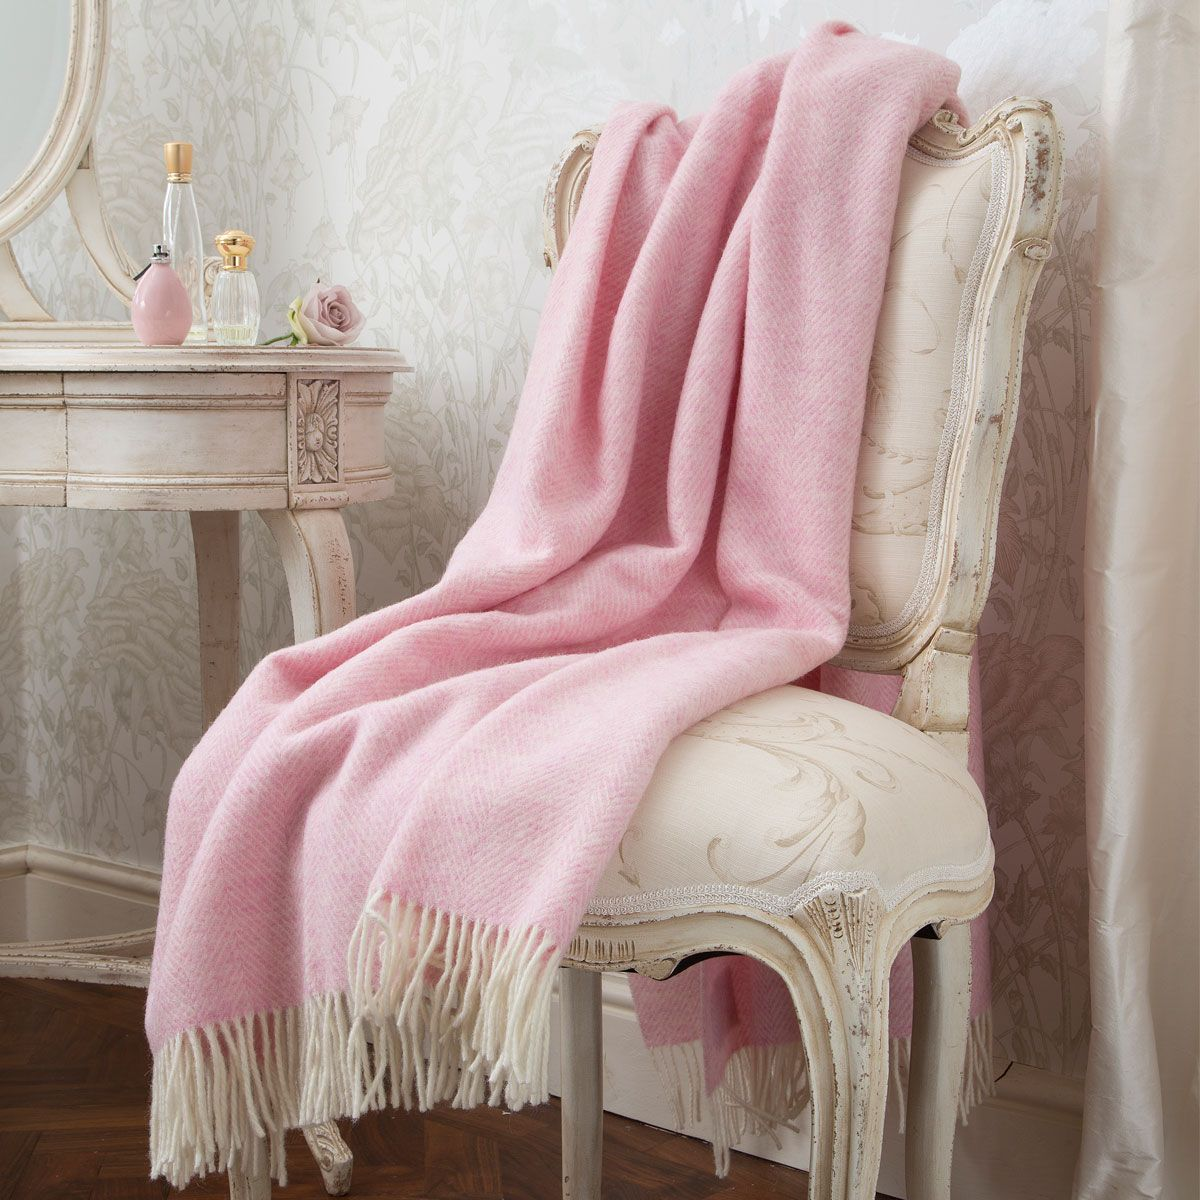 Variegated Herringbone Pink Heather Blanket by The French Bedroom Company